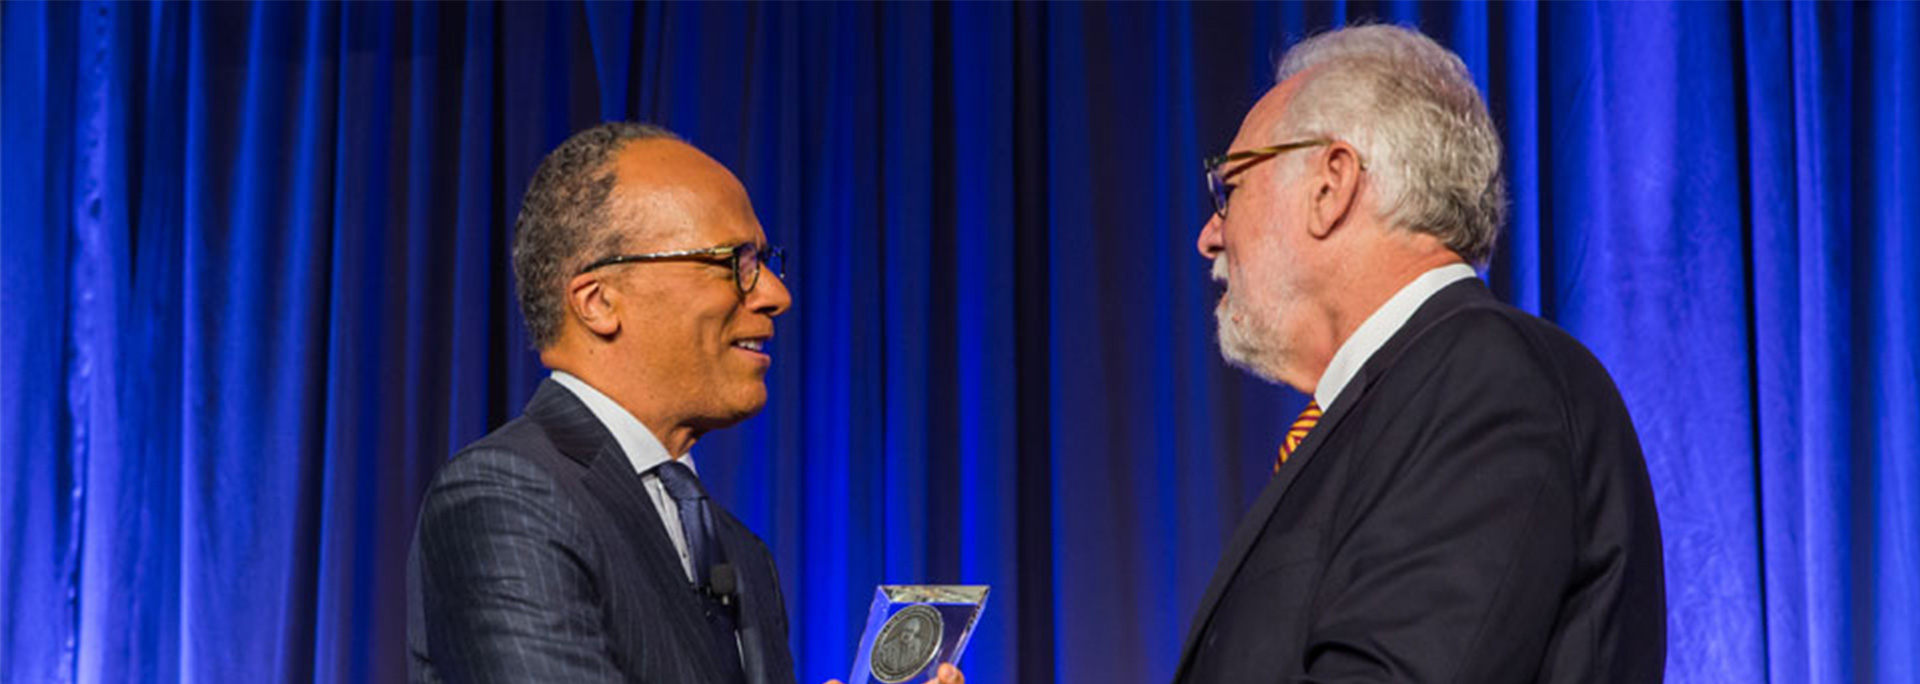 Lester Holt is presented with his Cronkite Award.